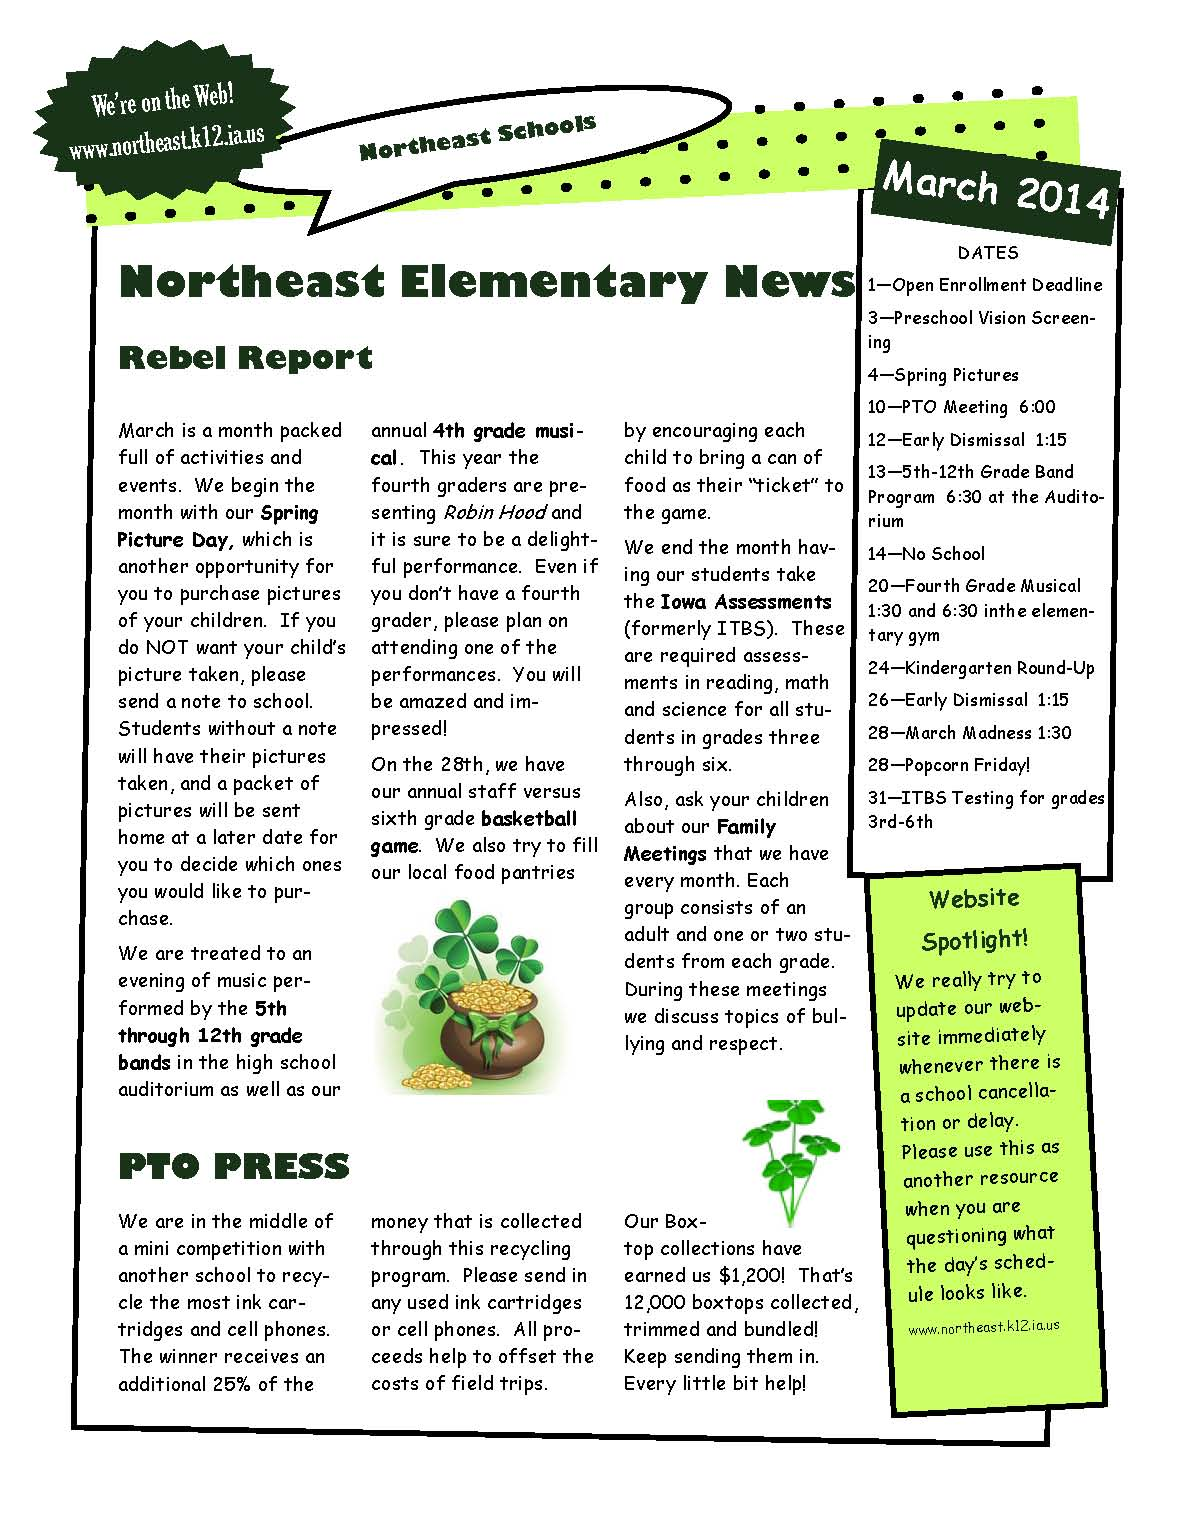 Elementary school newsletter templates for Primary school newsletter templates